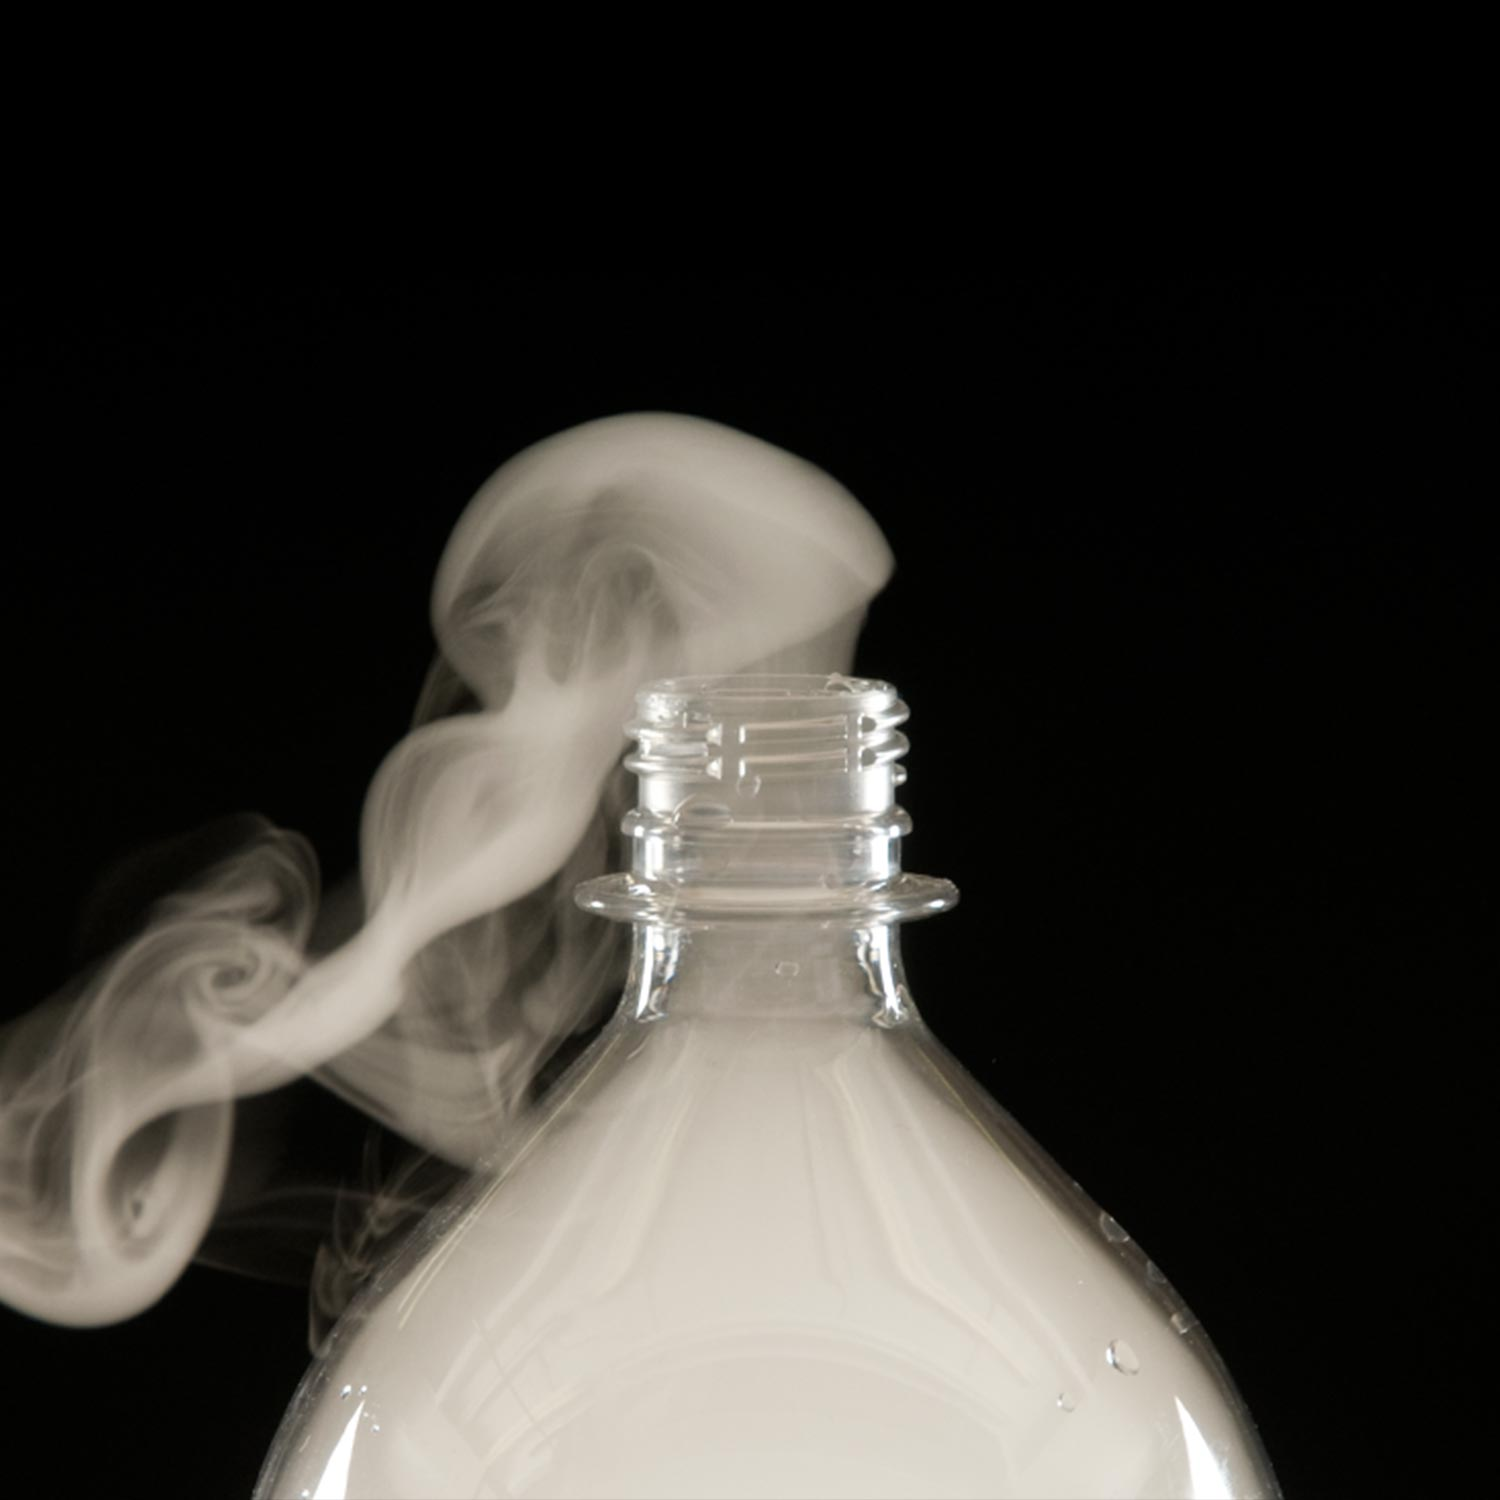 Cloud in a Bottle